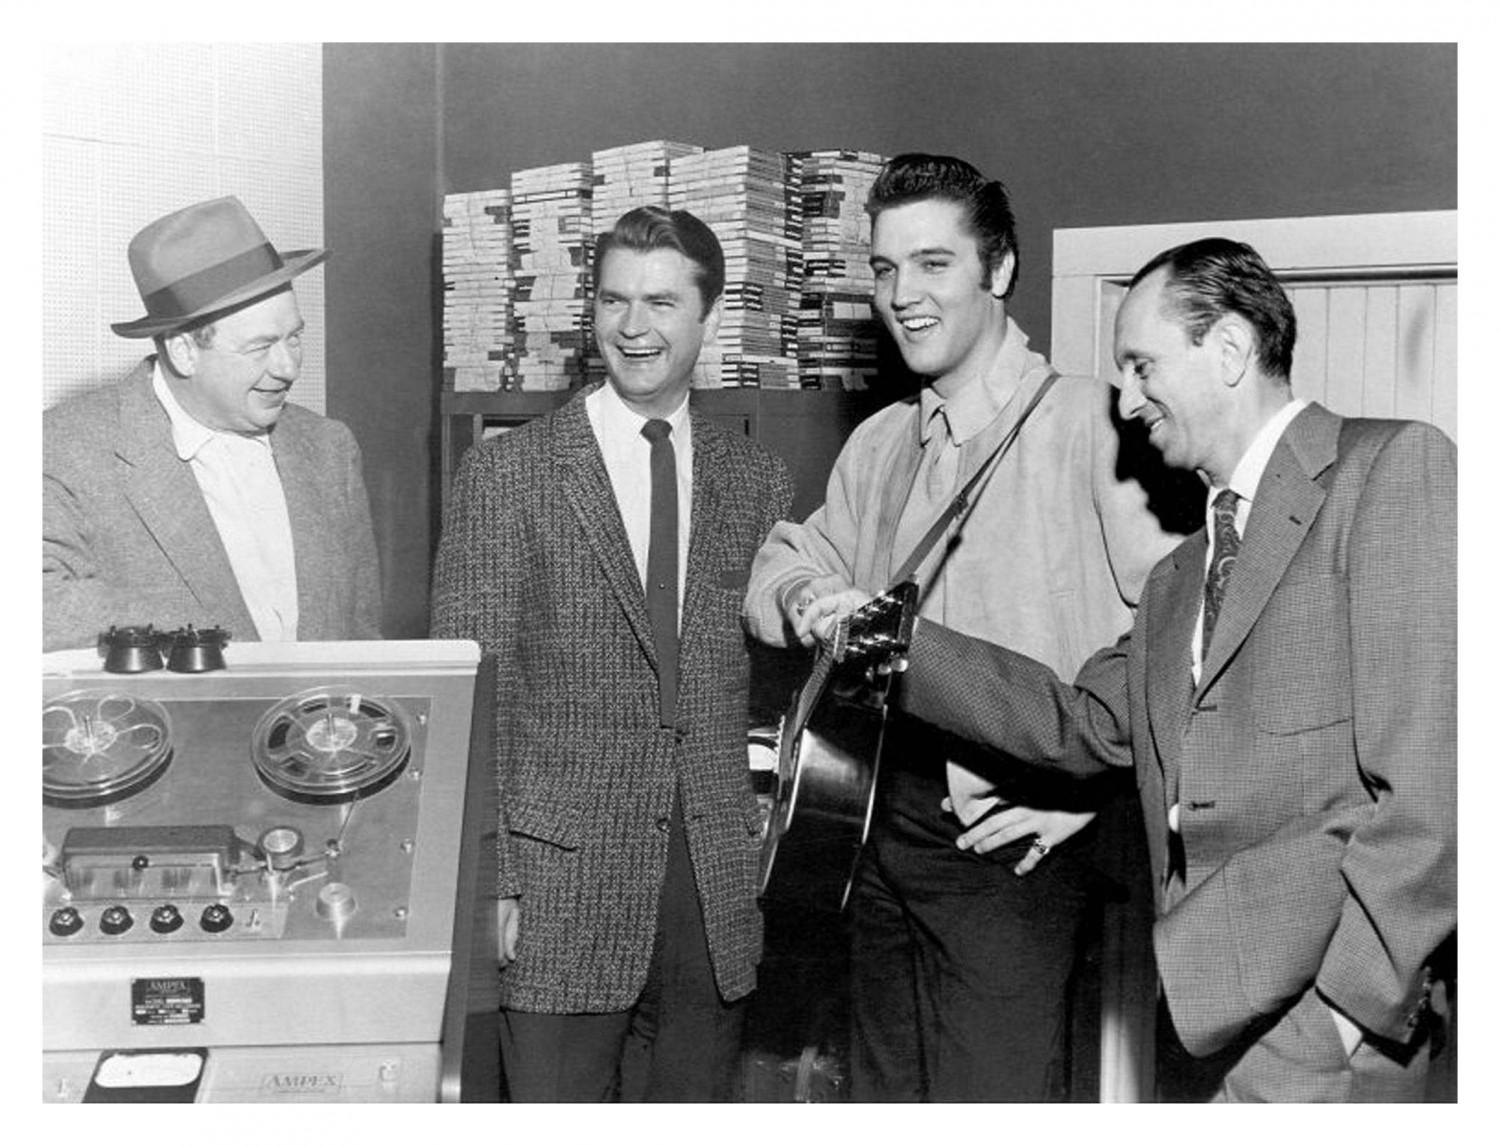 George Pierce - Sun Records - December 4, 1956 (08a)